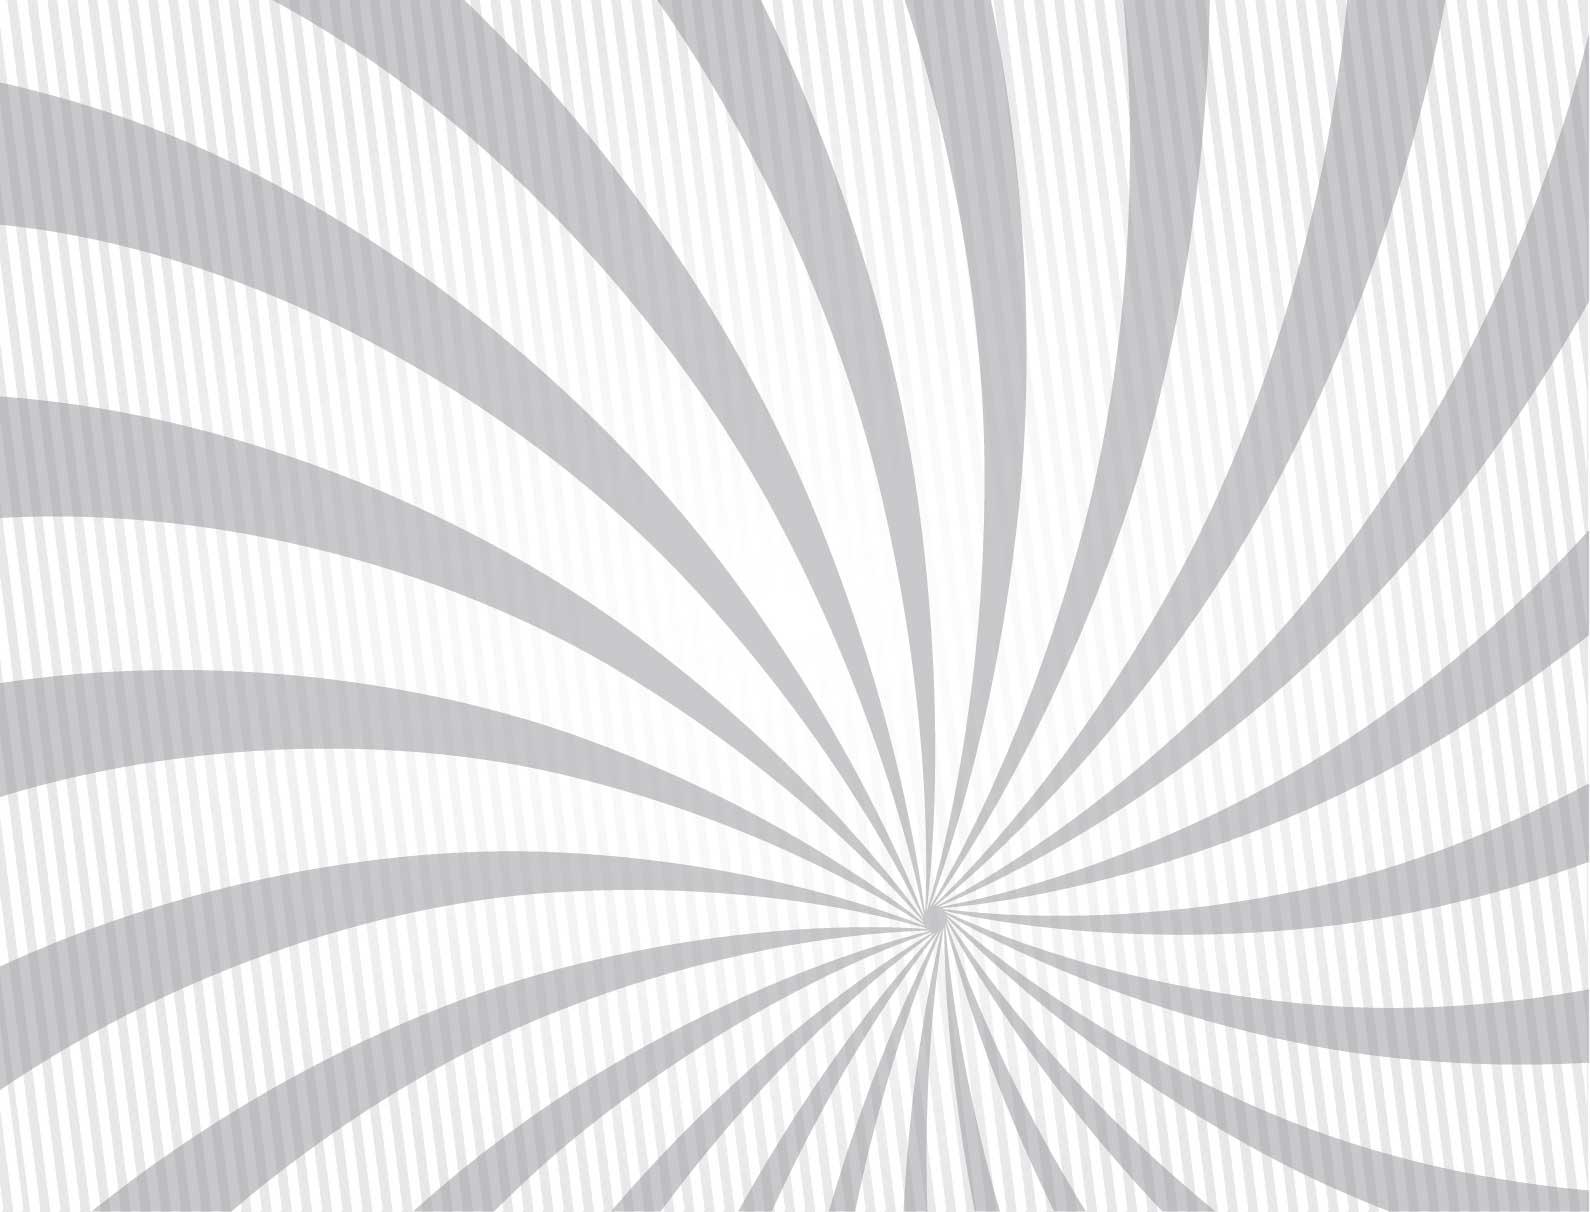 Cool Black And White Backgroundsother Cool White Background Images